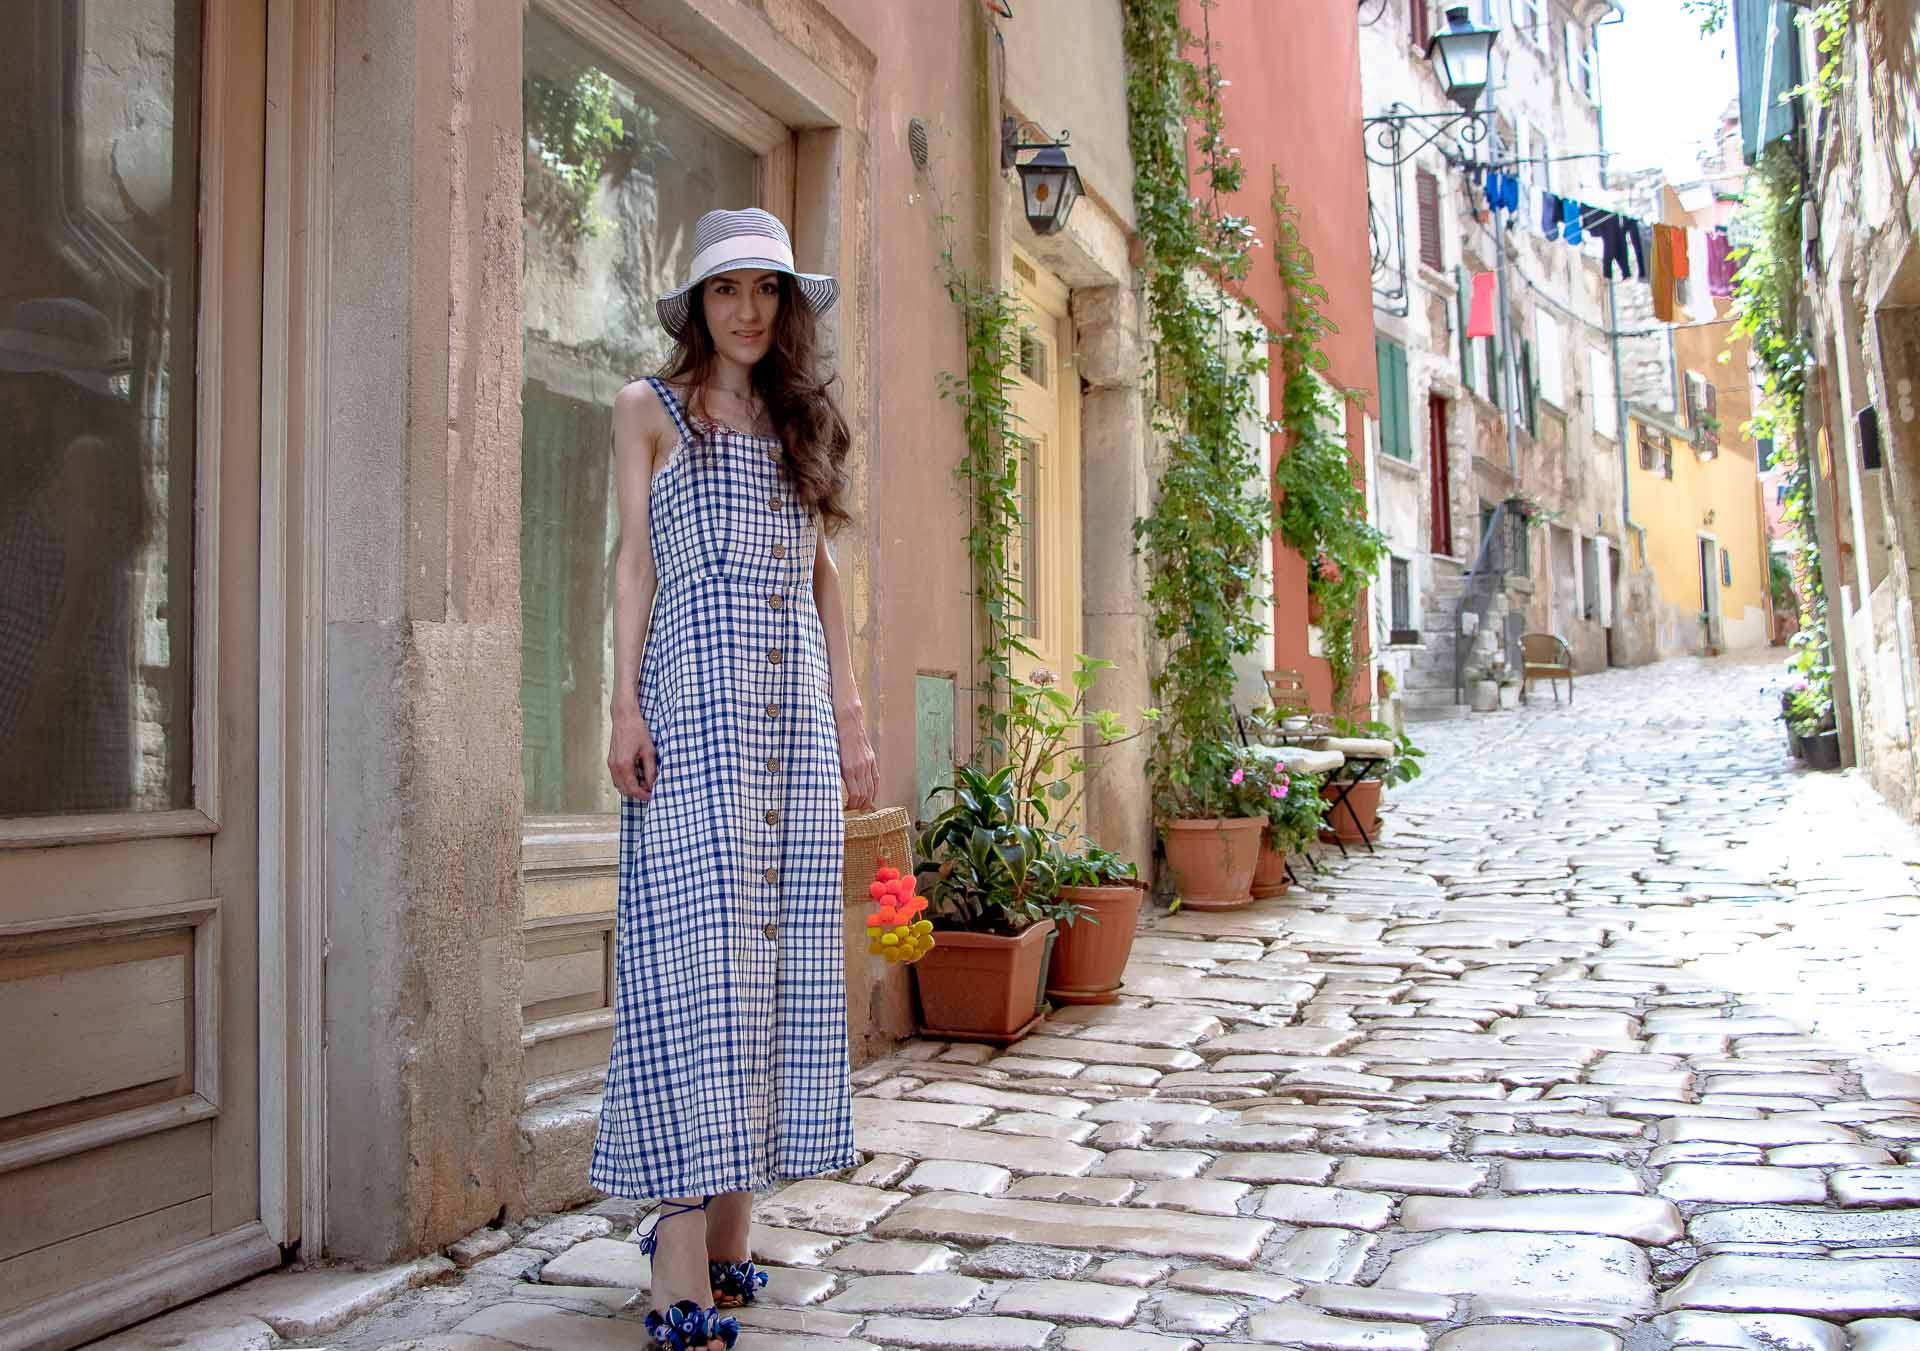 Fashion Blogger Veronika Lipar of Brunette from Wall Street dressed in plaid Mango front buttoned cotton dress, Nannacay basket bag, blue straw hat, Aquazzura blue tropicana sandals, walking down the stone paved streets in Rovinj Croatia